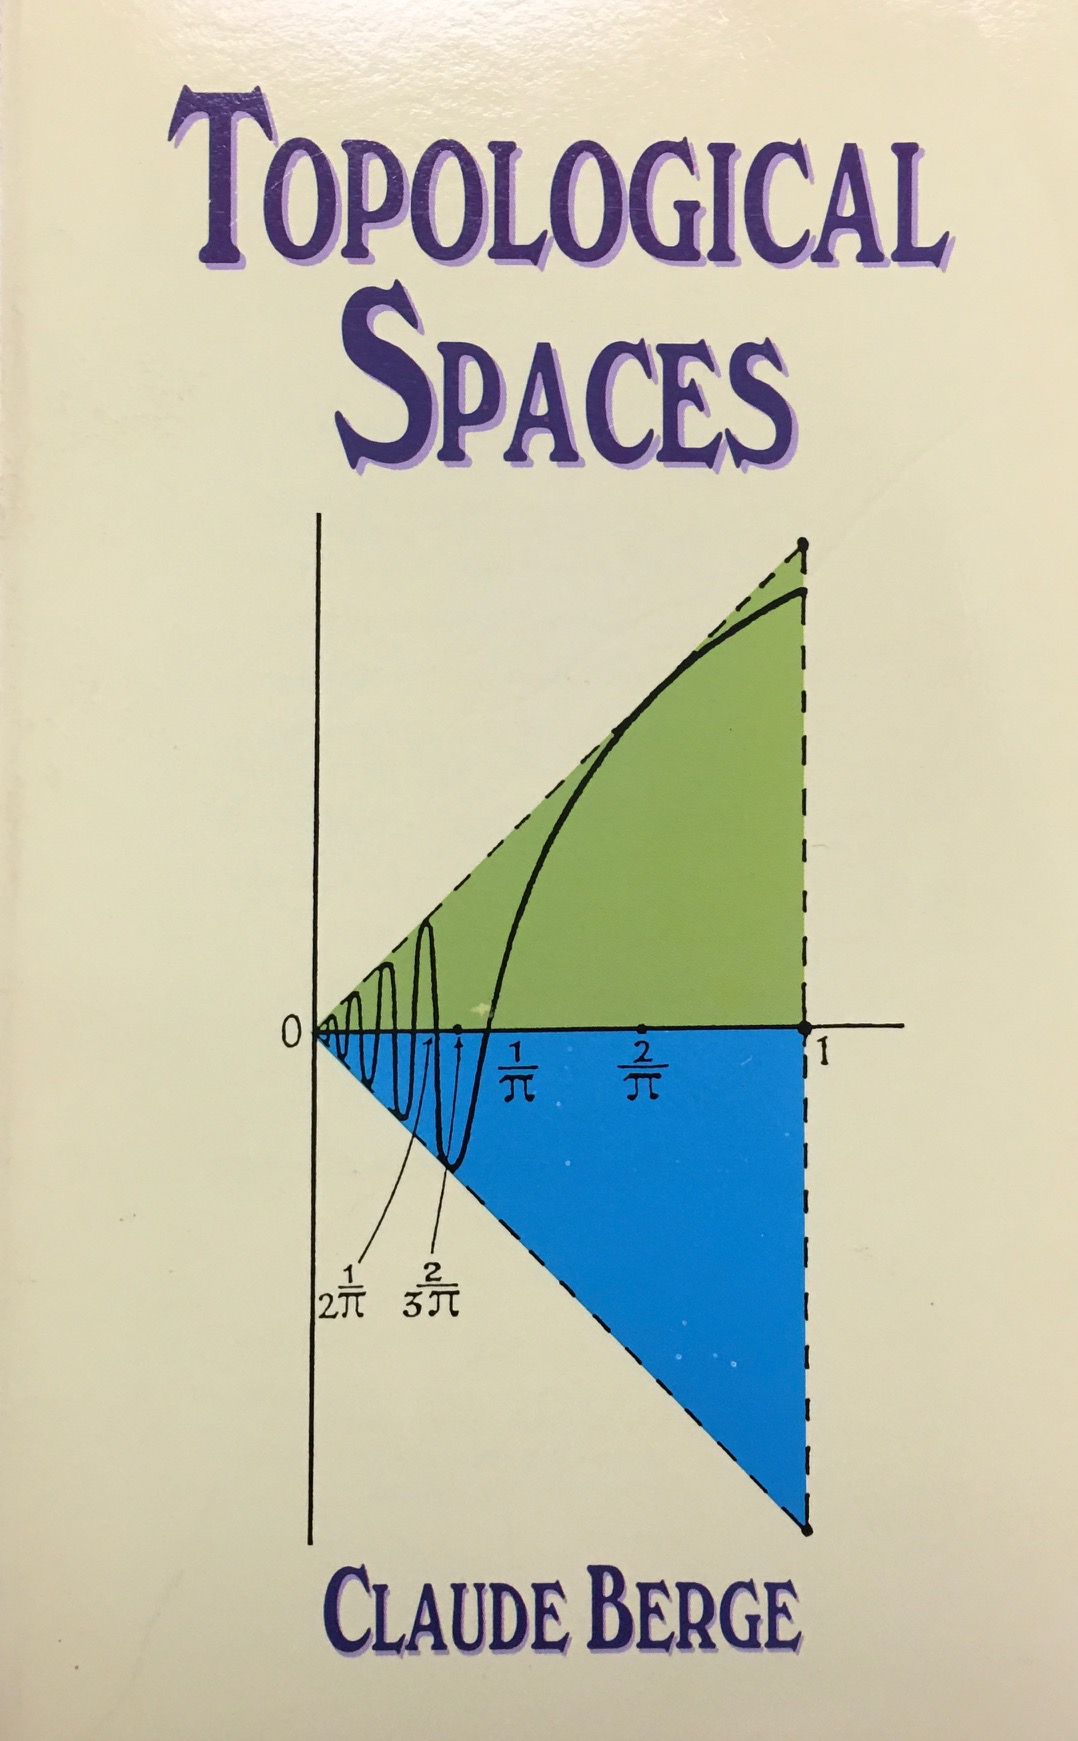 Image for Topological Spaces: Including a Treatment of Multi-Valued Functions, Vector Spaces and Convexity (Dover Books on Mathematics)